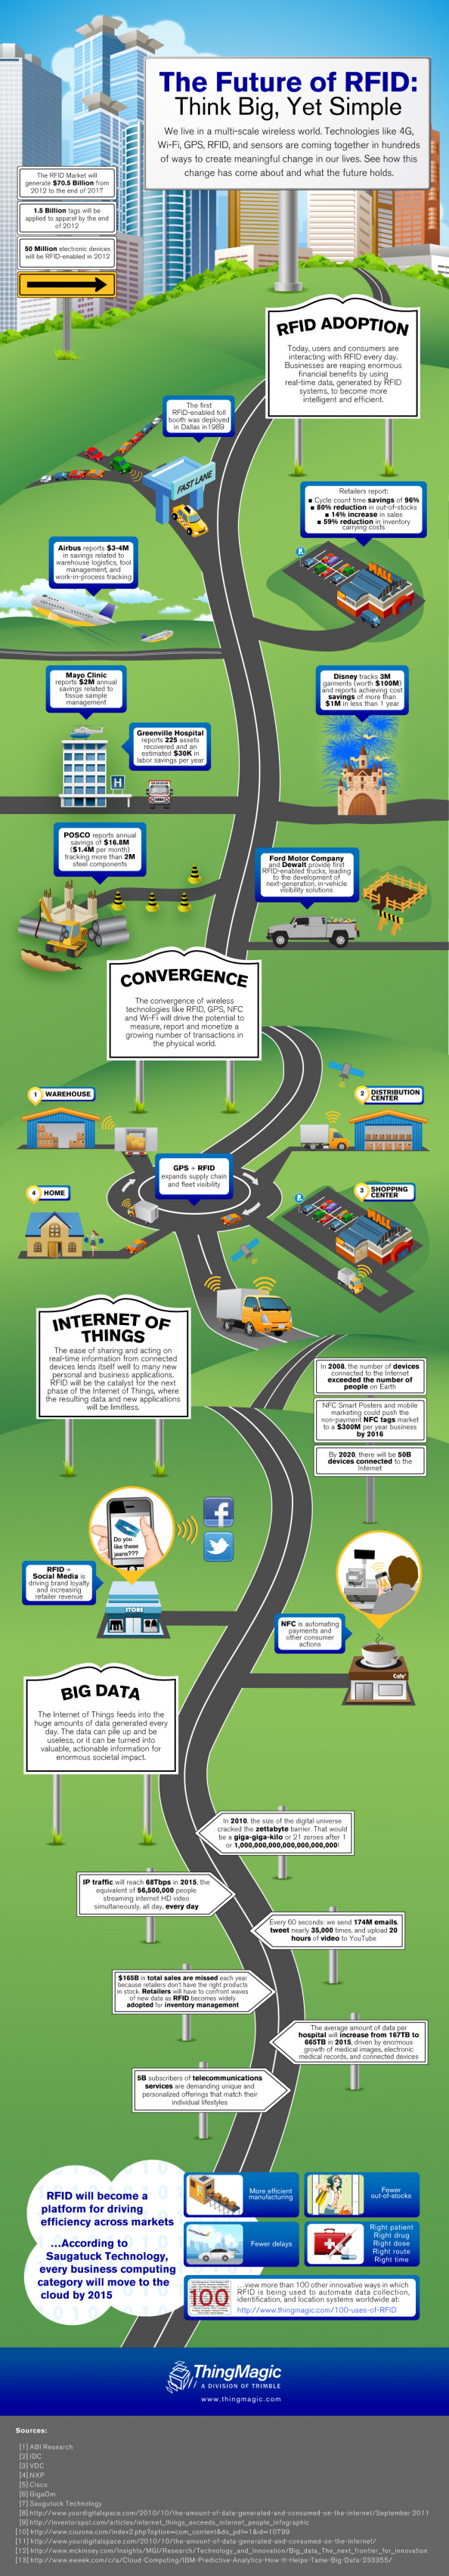 Future of RFID Infographic